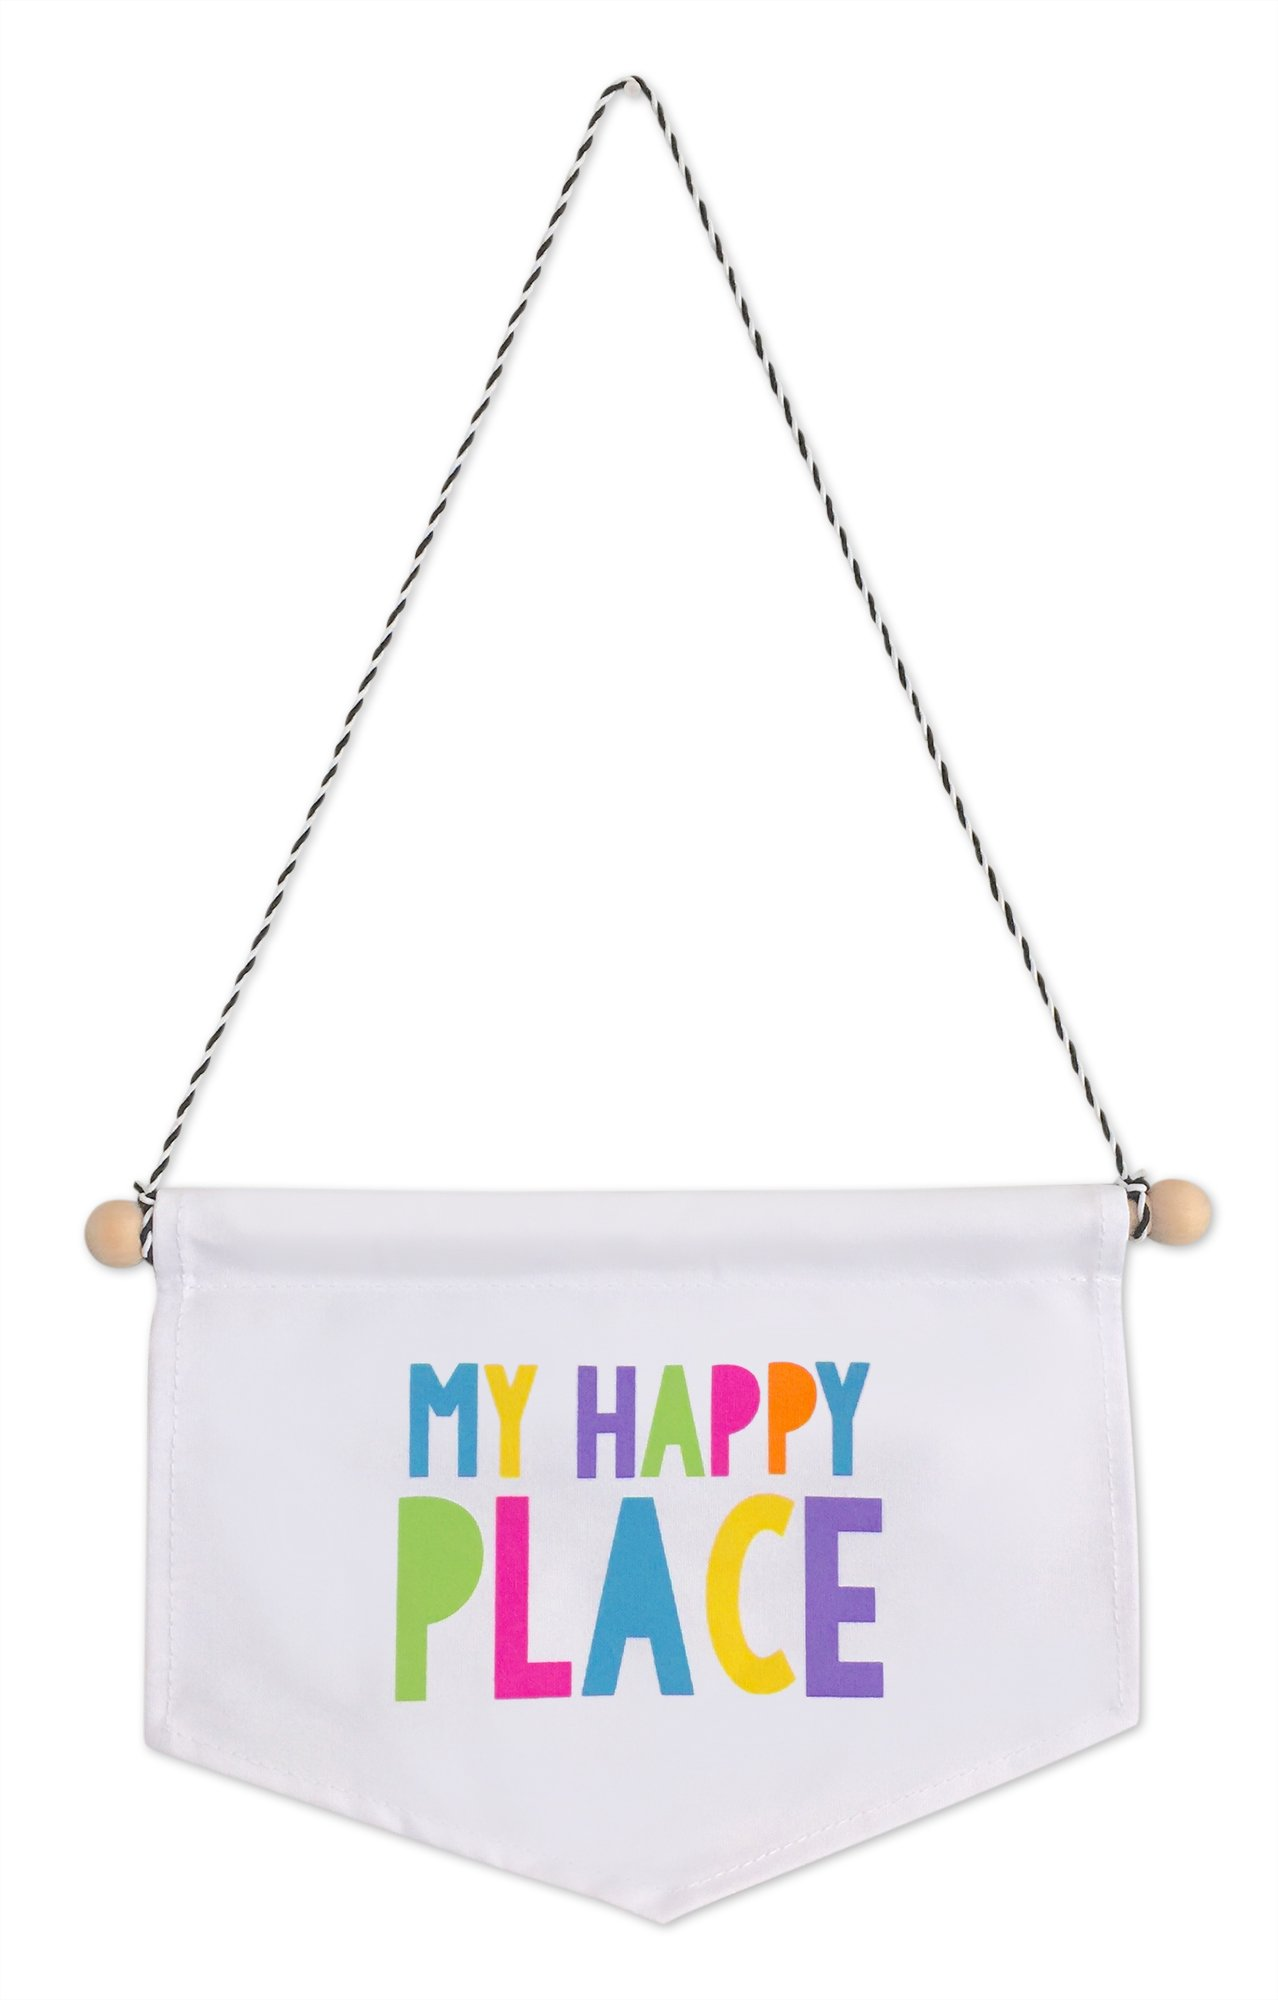 Tiny Hideaways My Happy Place Canvas Banner for Kids Playroom, Bedroom, and Teepee Tent by